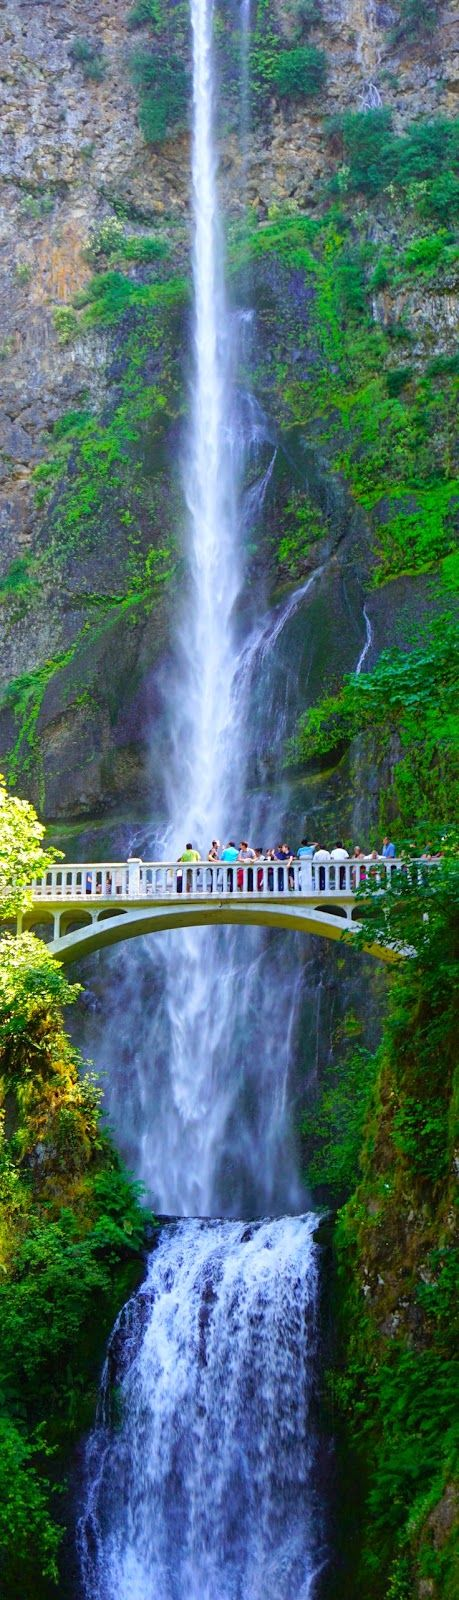 Tiny people on their little bridge add a sense if perspective to the glory of nature  Multnomah Falls, Portland | Destinations Planet